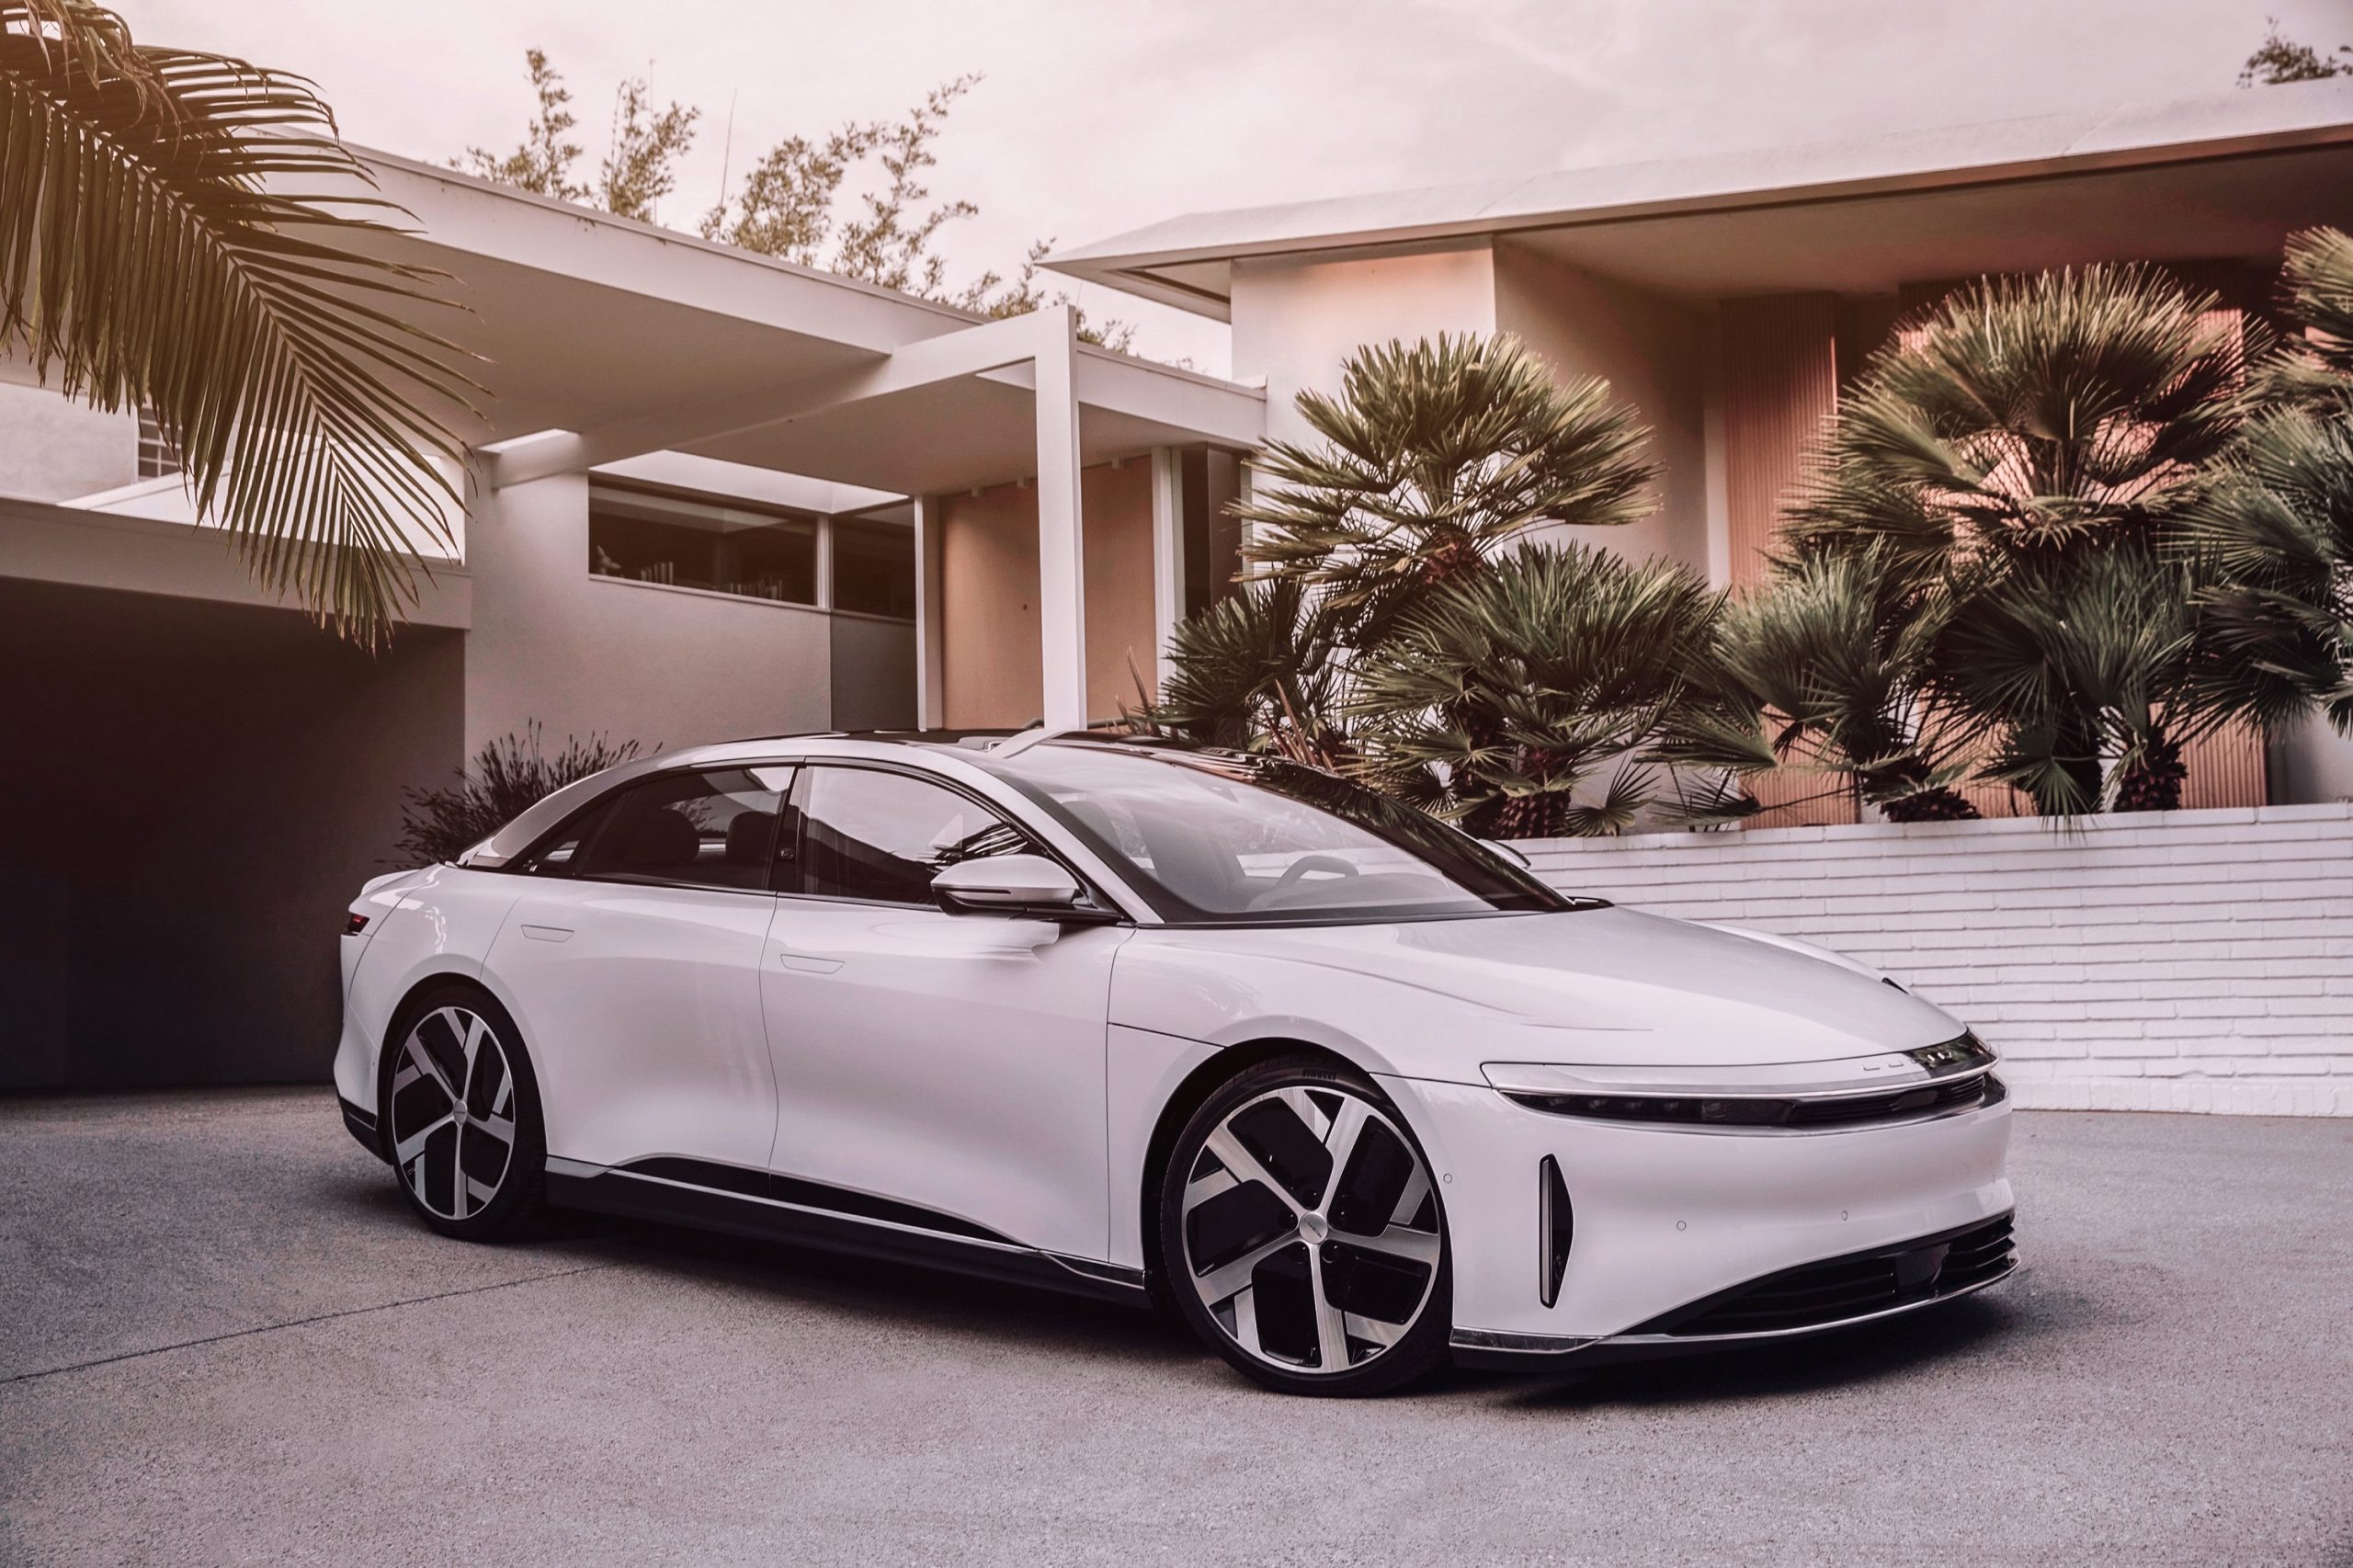 A white Lucid Air luxury EV shot from the front 3/4 angle in a driveway with palms in the background